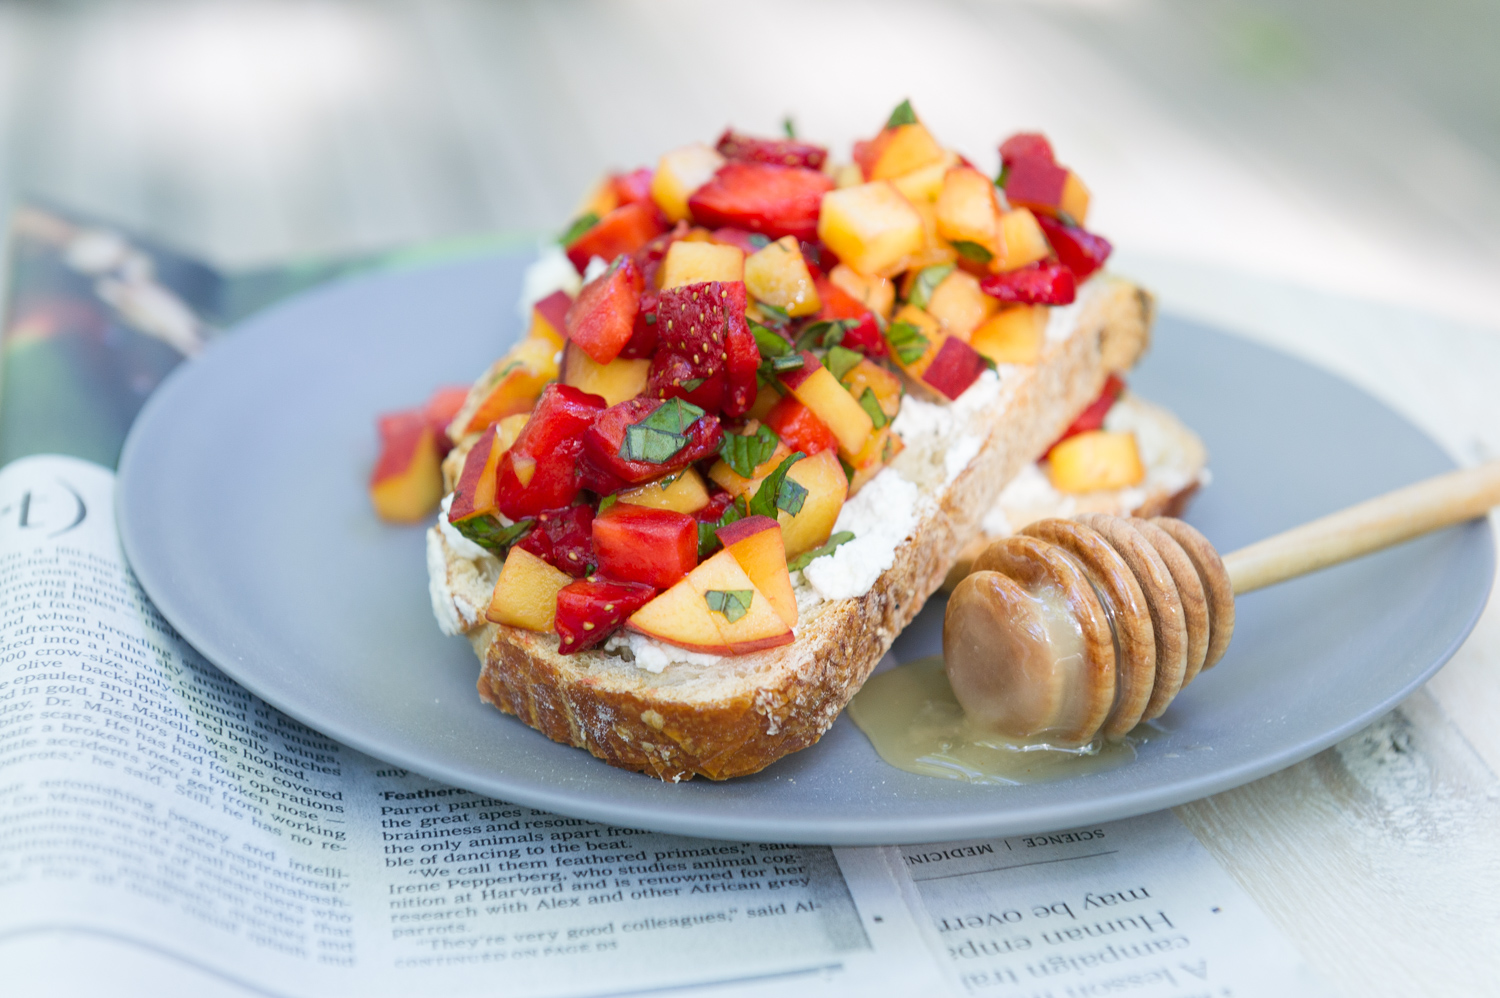 Strawberry and Peach breakfast bruschetta with fluffy ricotta and local honey recipe by Heather Cox of Eat Real Food